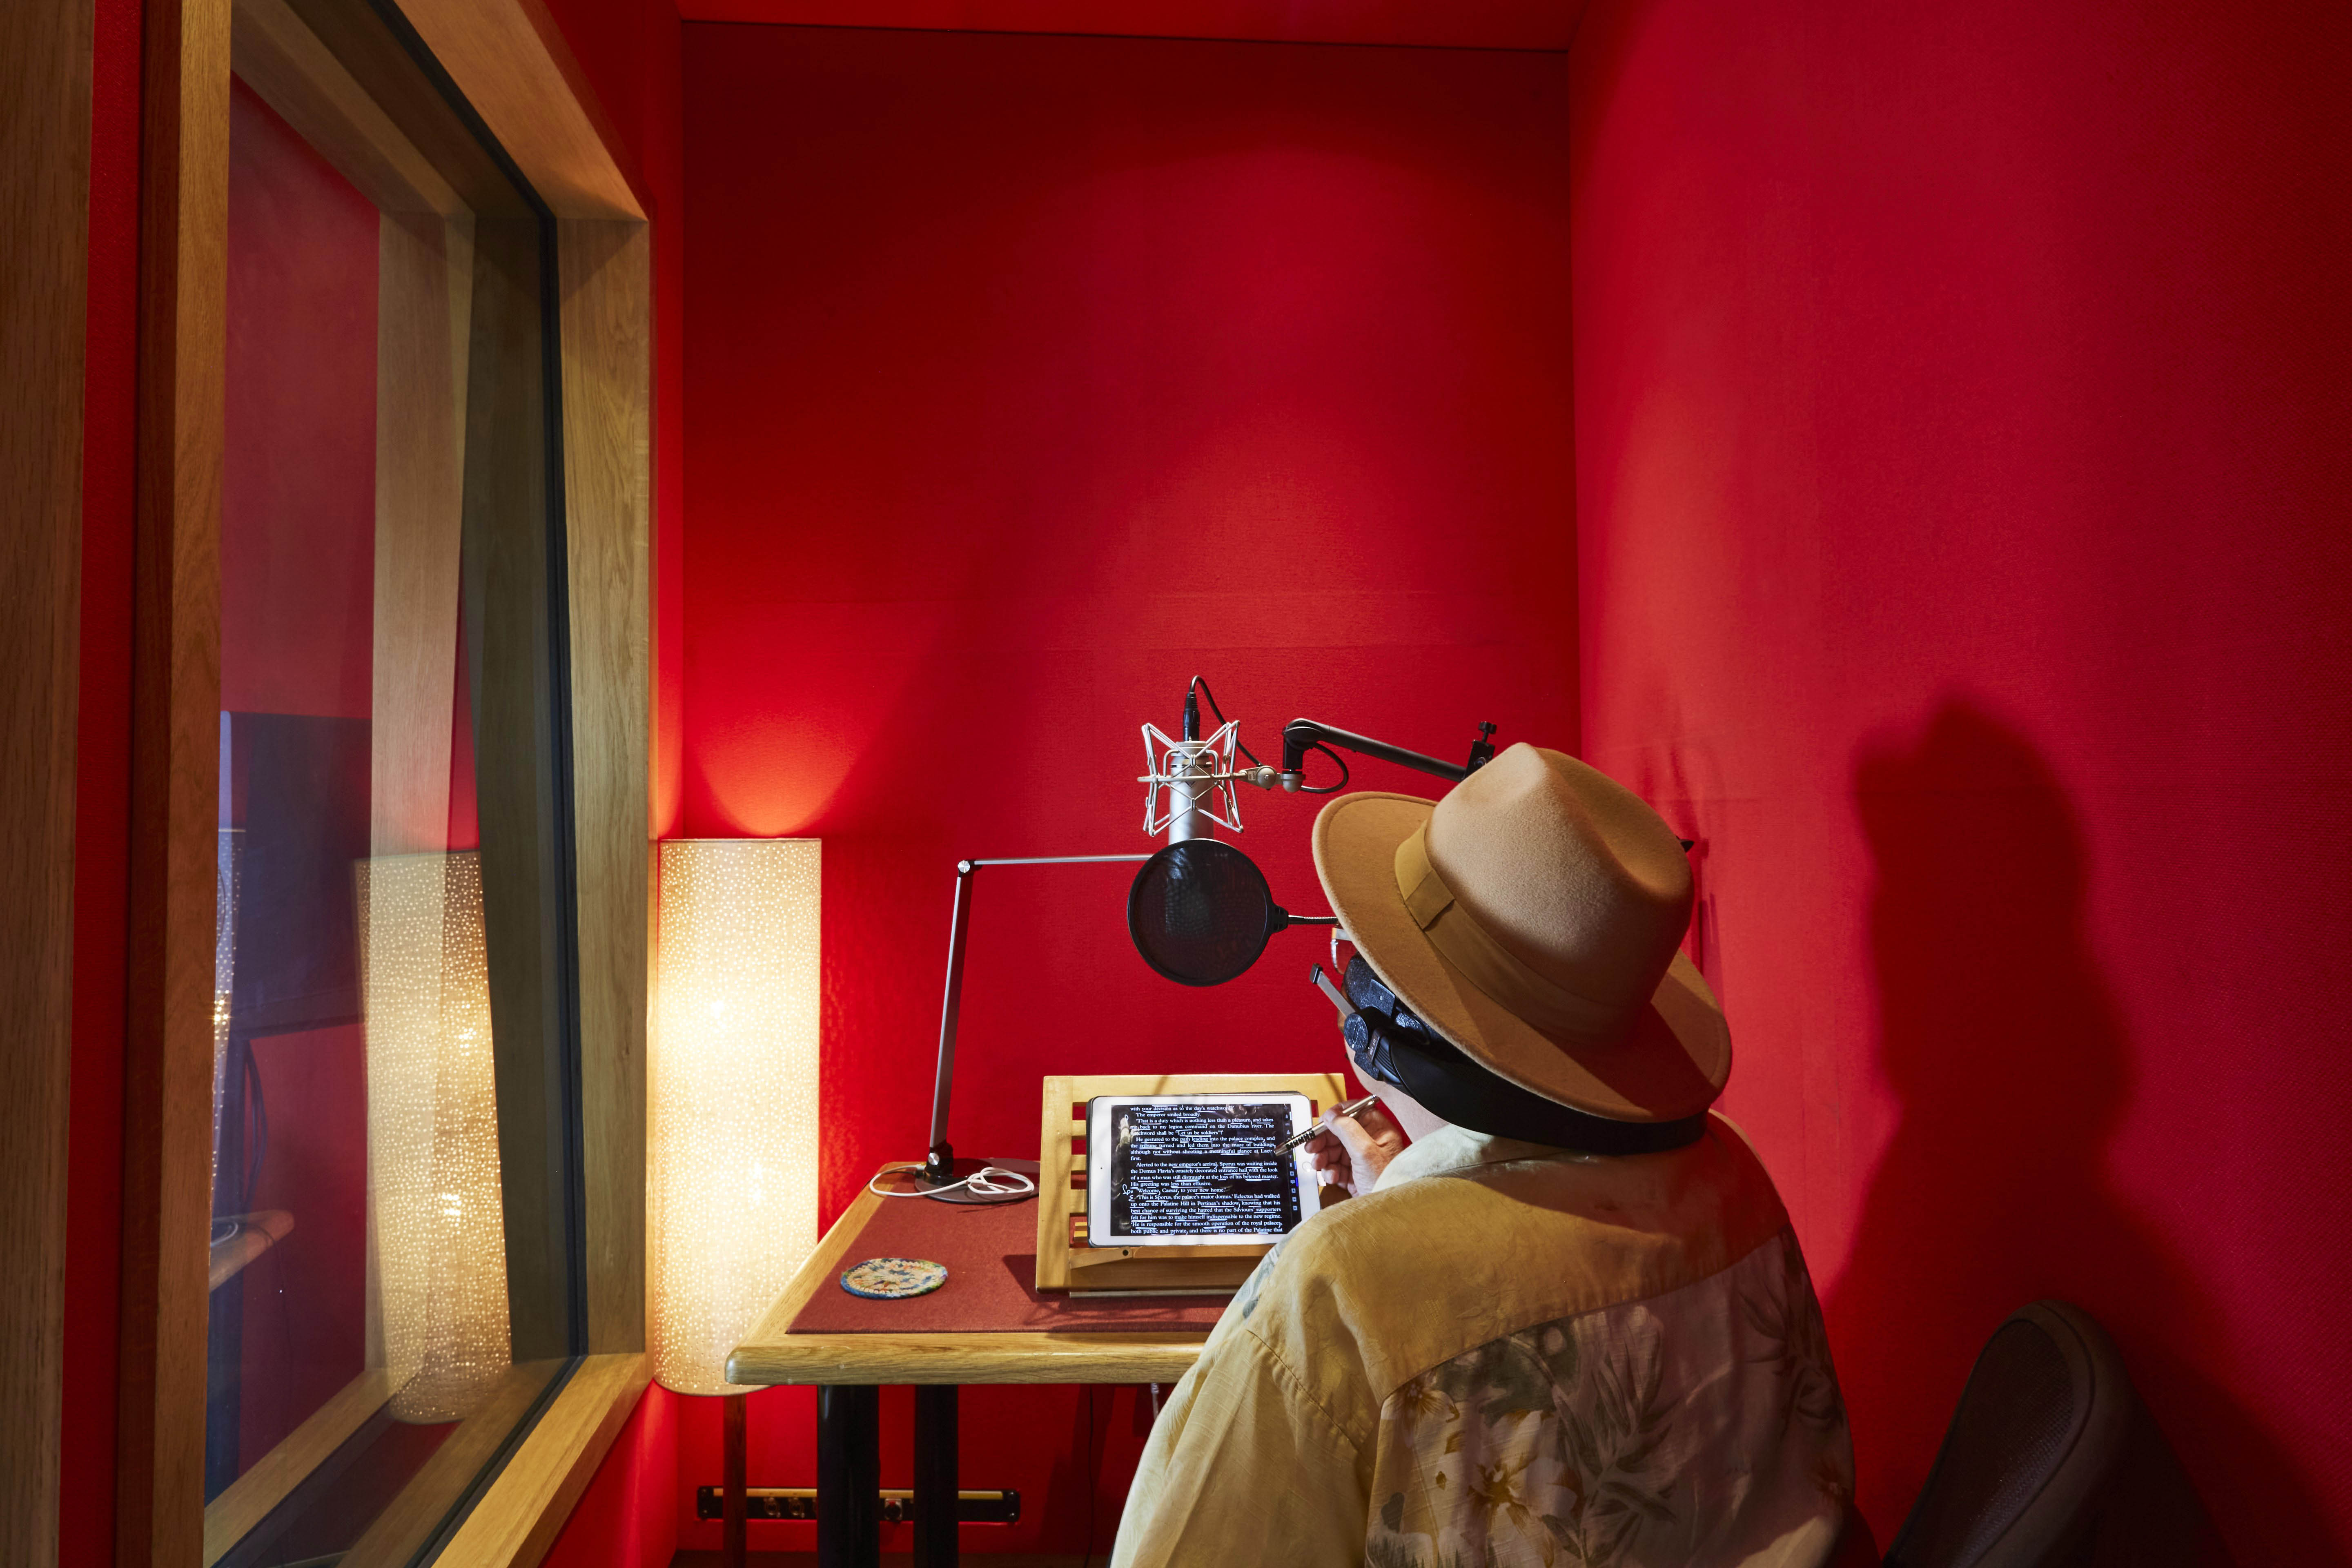 Man recording audio for an audiobook